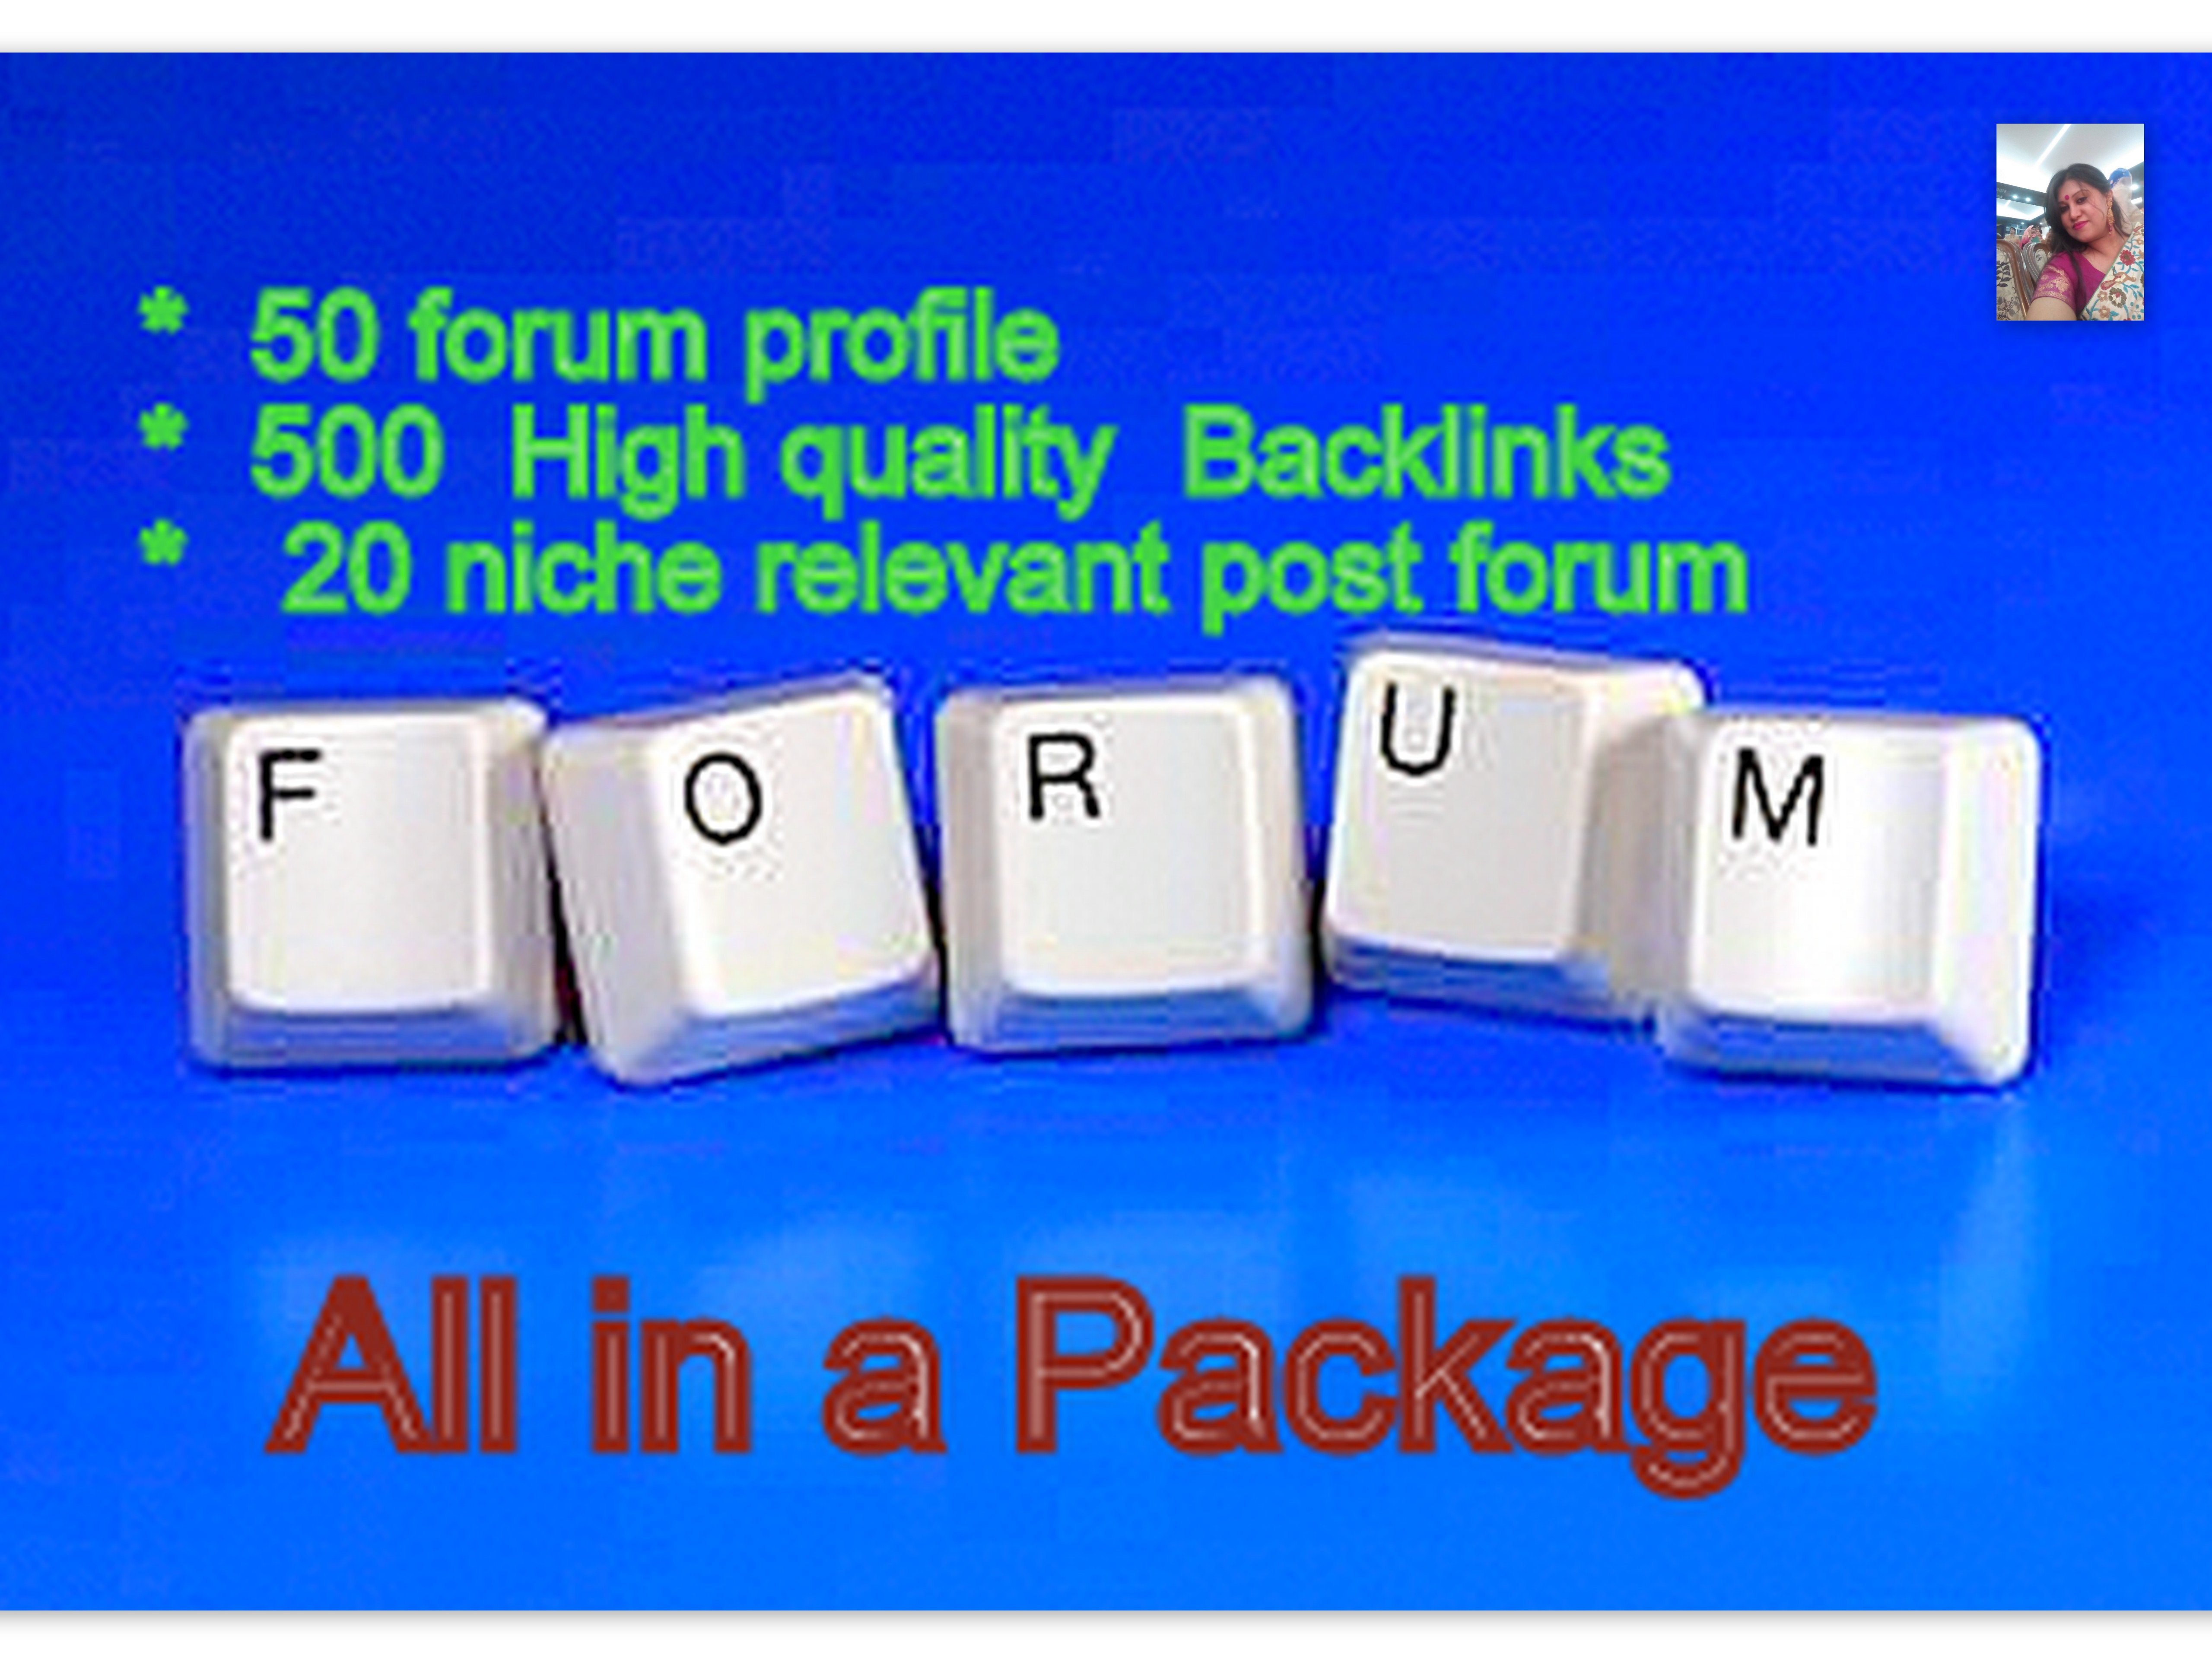 Rank Your Website on Google By High Quality Back links 50 profile + 500 post+ 20 niche post